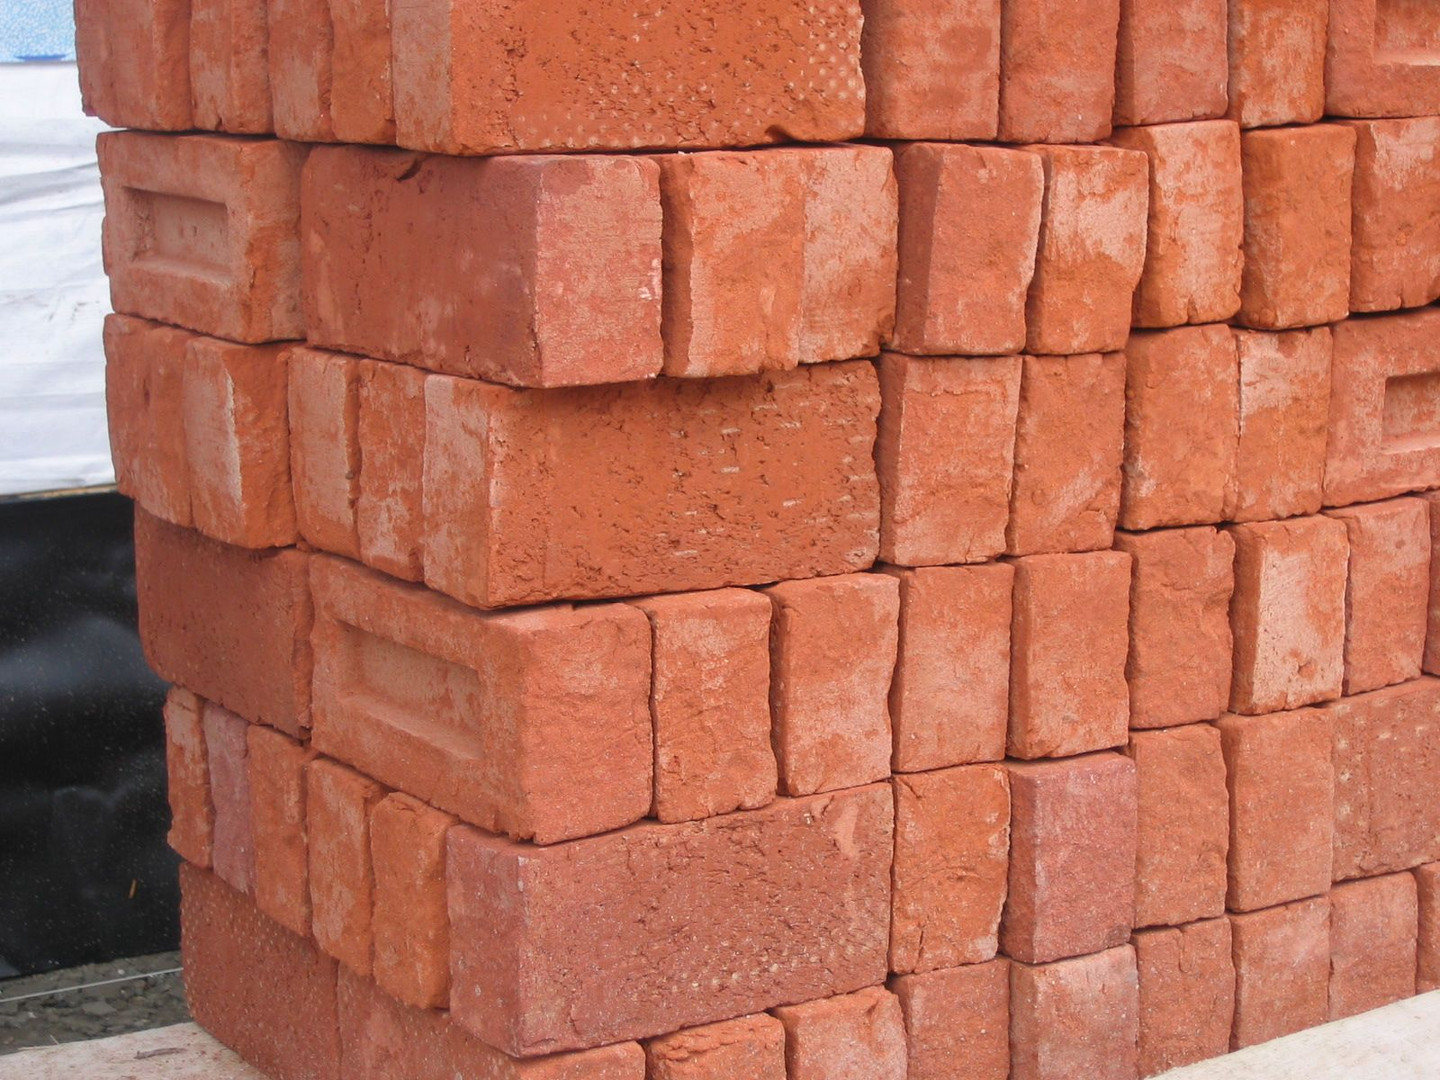 Stapel_bakstenen_-_Pile_of_bricks_2005_F